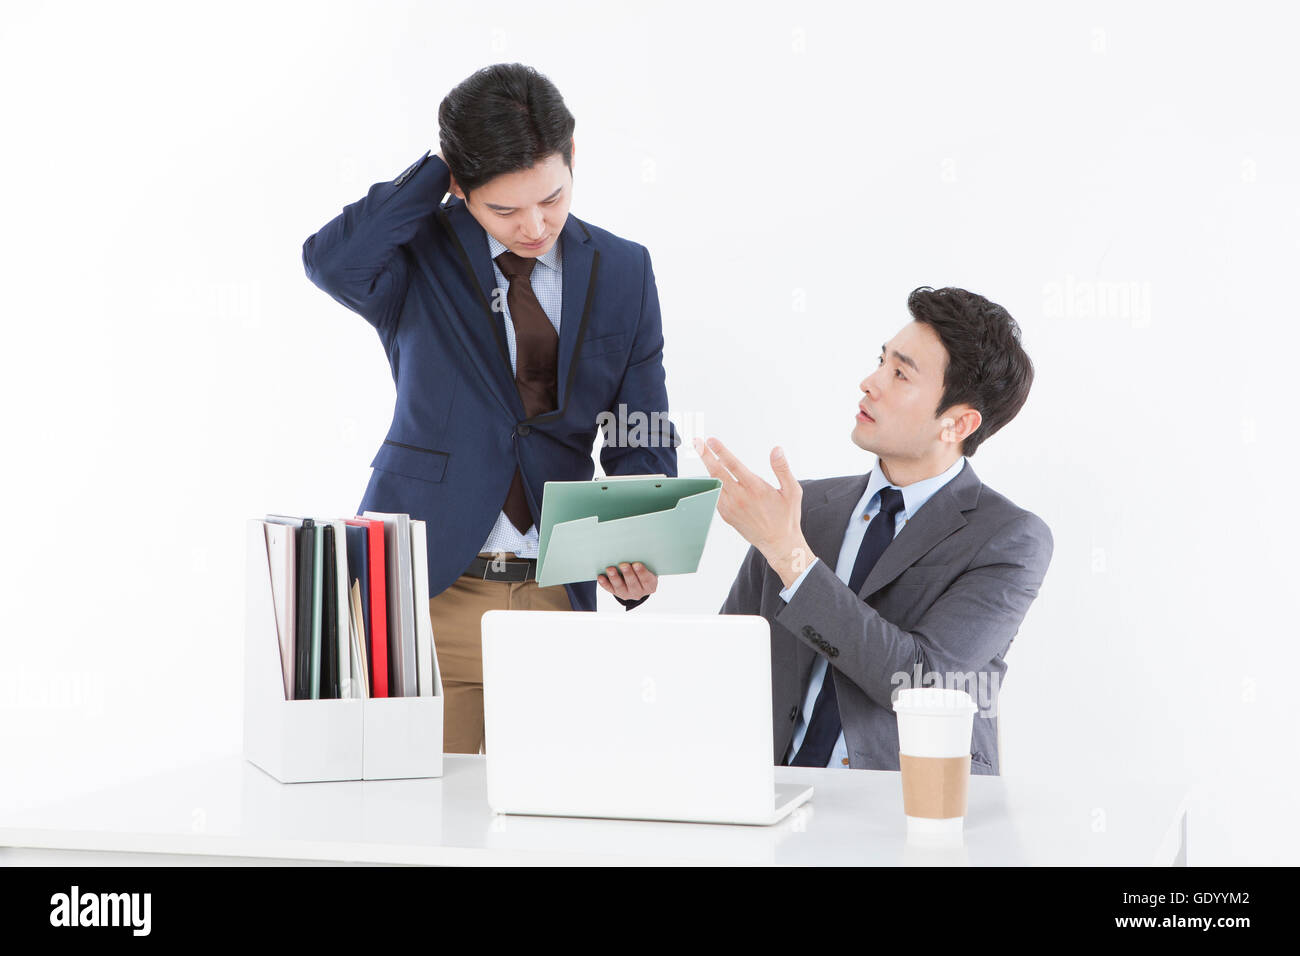 businessman being scolded by his supervisor at work stock photo businessman being scolded by his supervisor at work